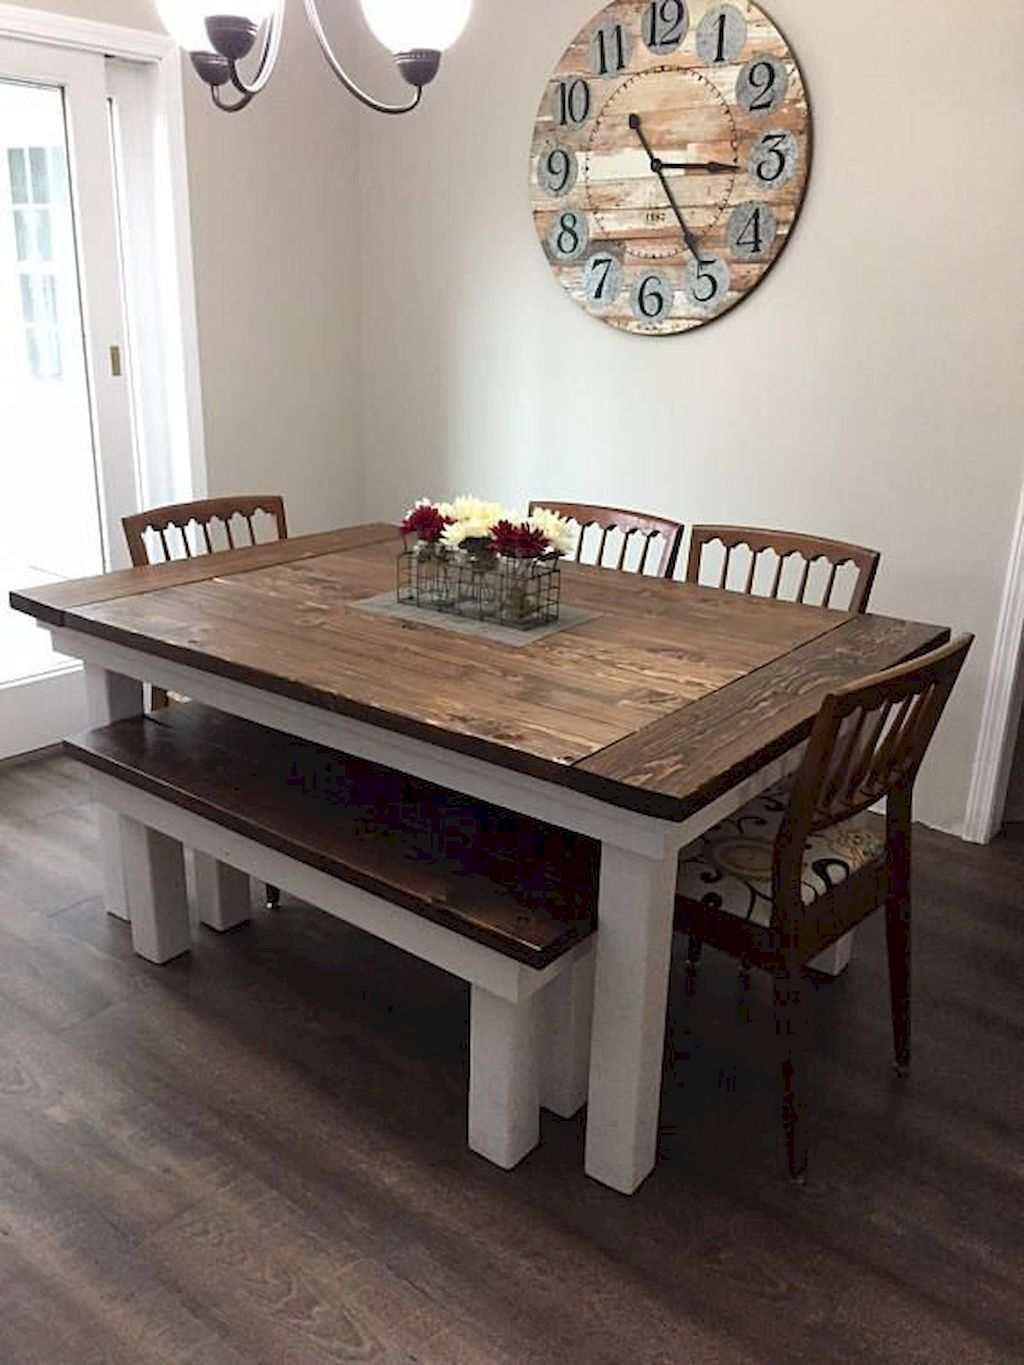 85 Rustic Farmhouse Dining Room Table Ideas is part of  - Hearing the term farmhouse would make us think of a home located on a rural area surrounded by trees and pastures  You would picture a home made of wooden planks and an interior that is kind of shabby with a… Continue Reading →